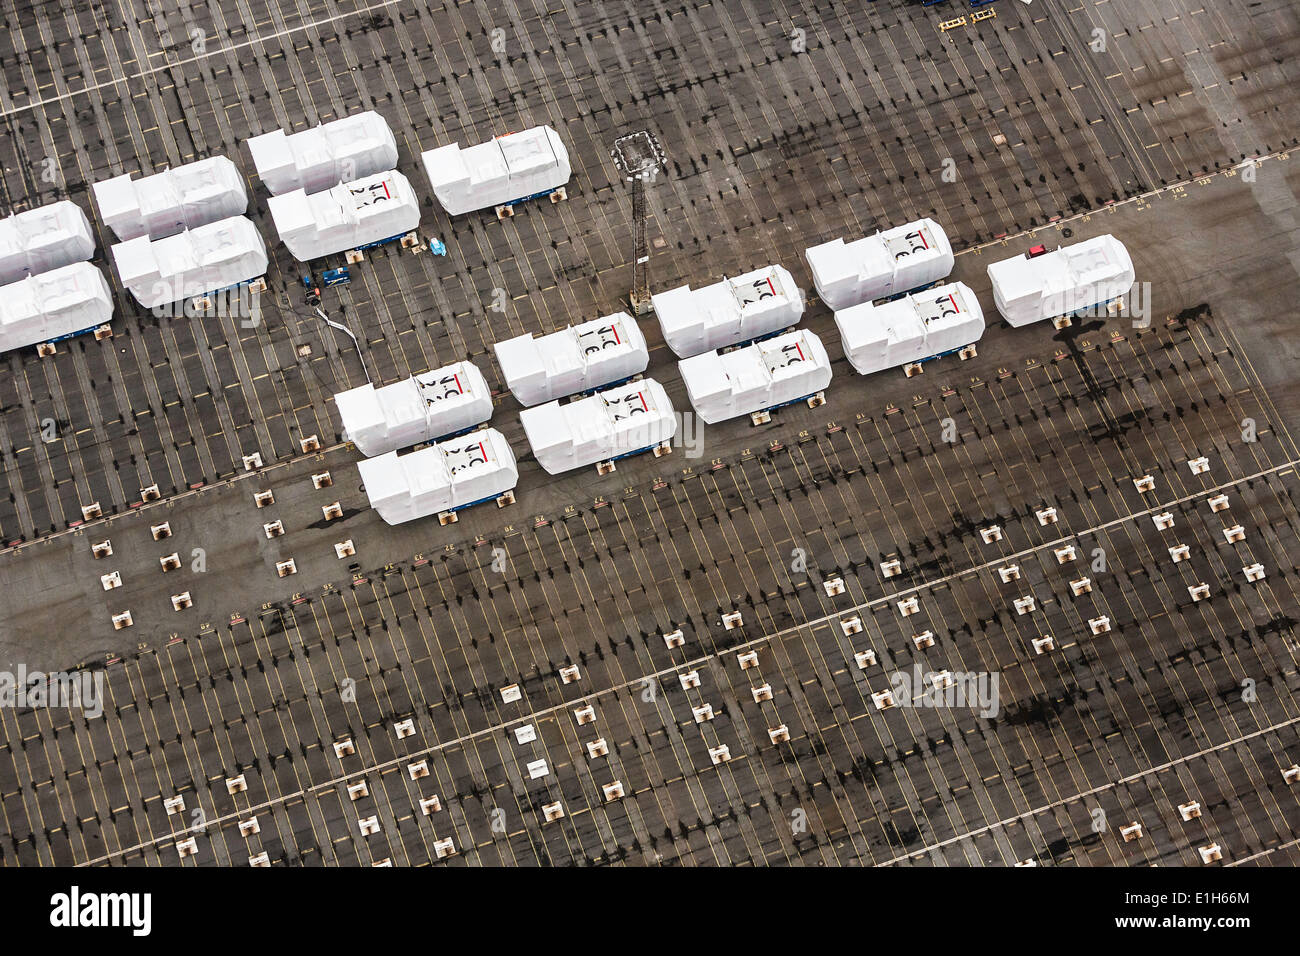 Rows of nacelles, component part for off shore wind turbines, Bremerhaven, Bremen, Germany - Stock Image